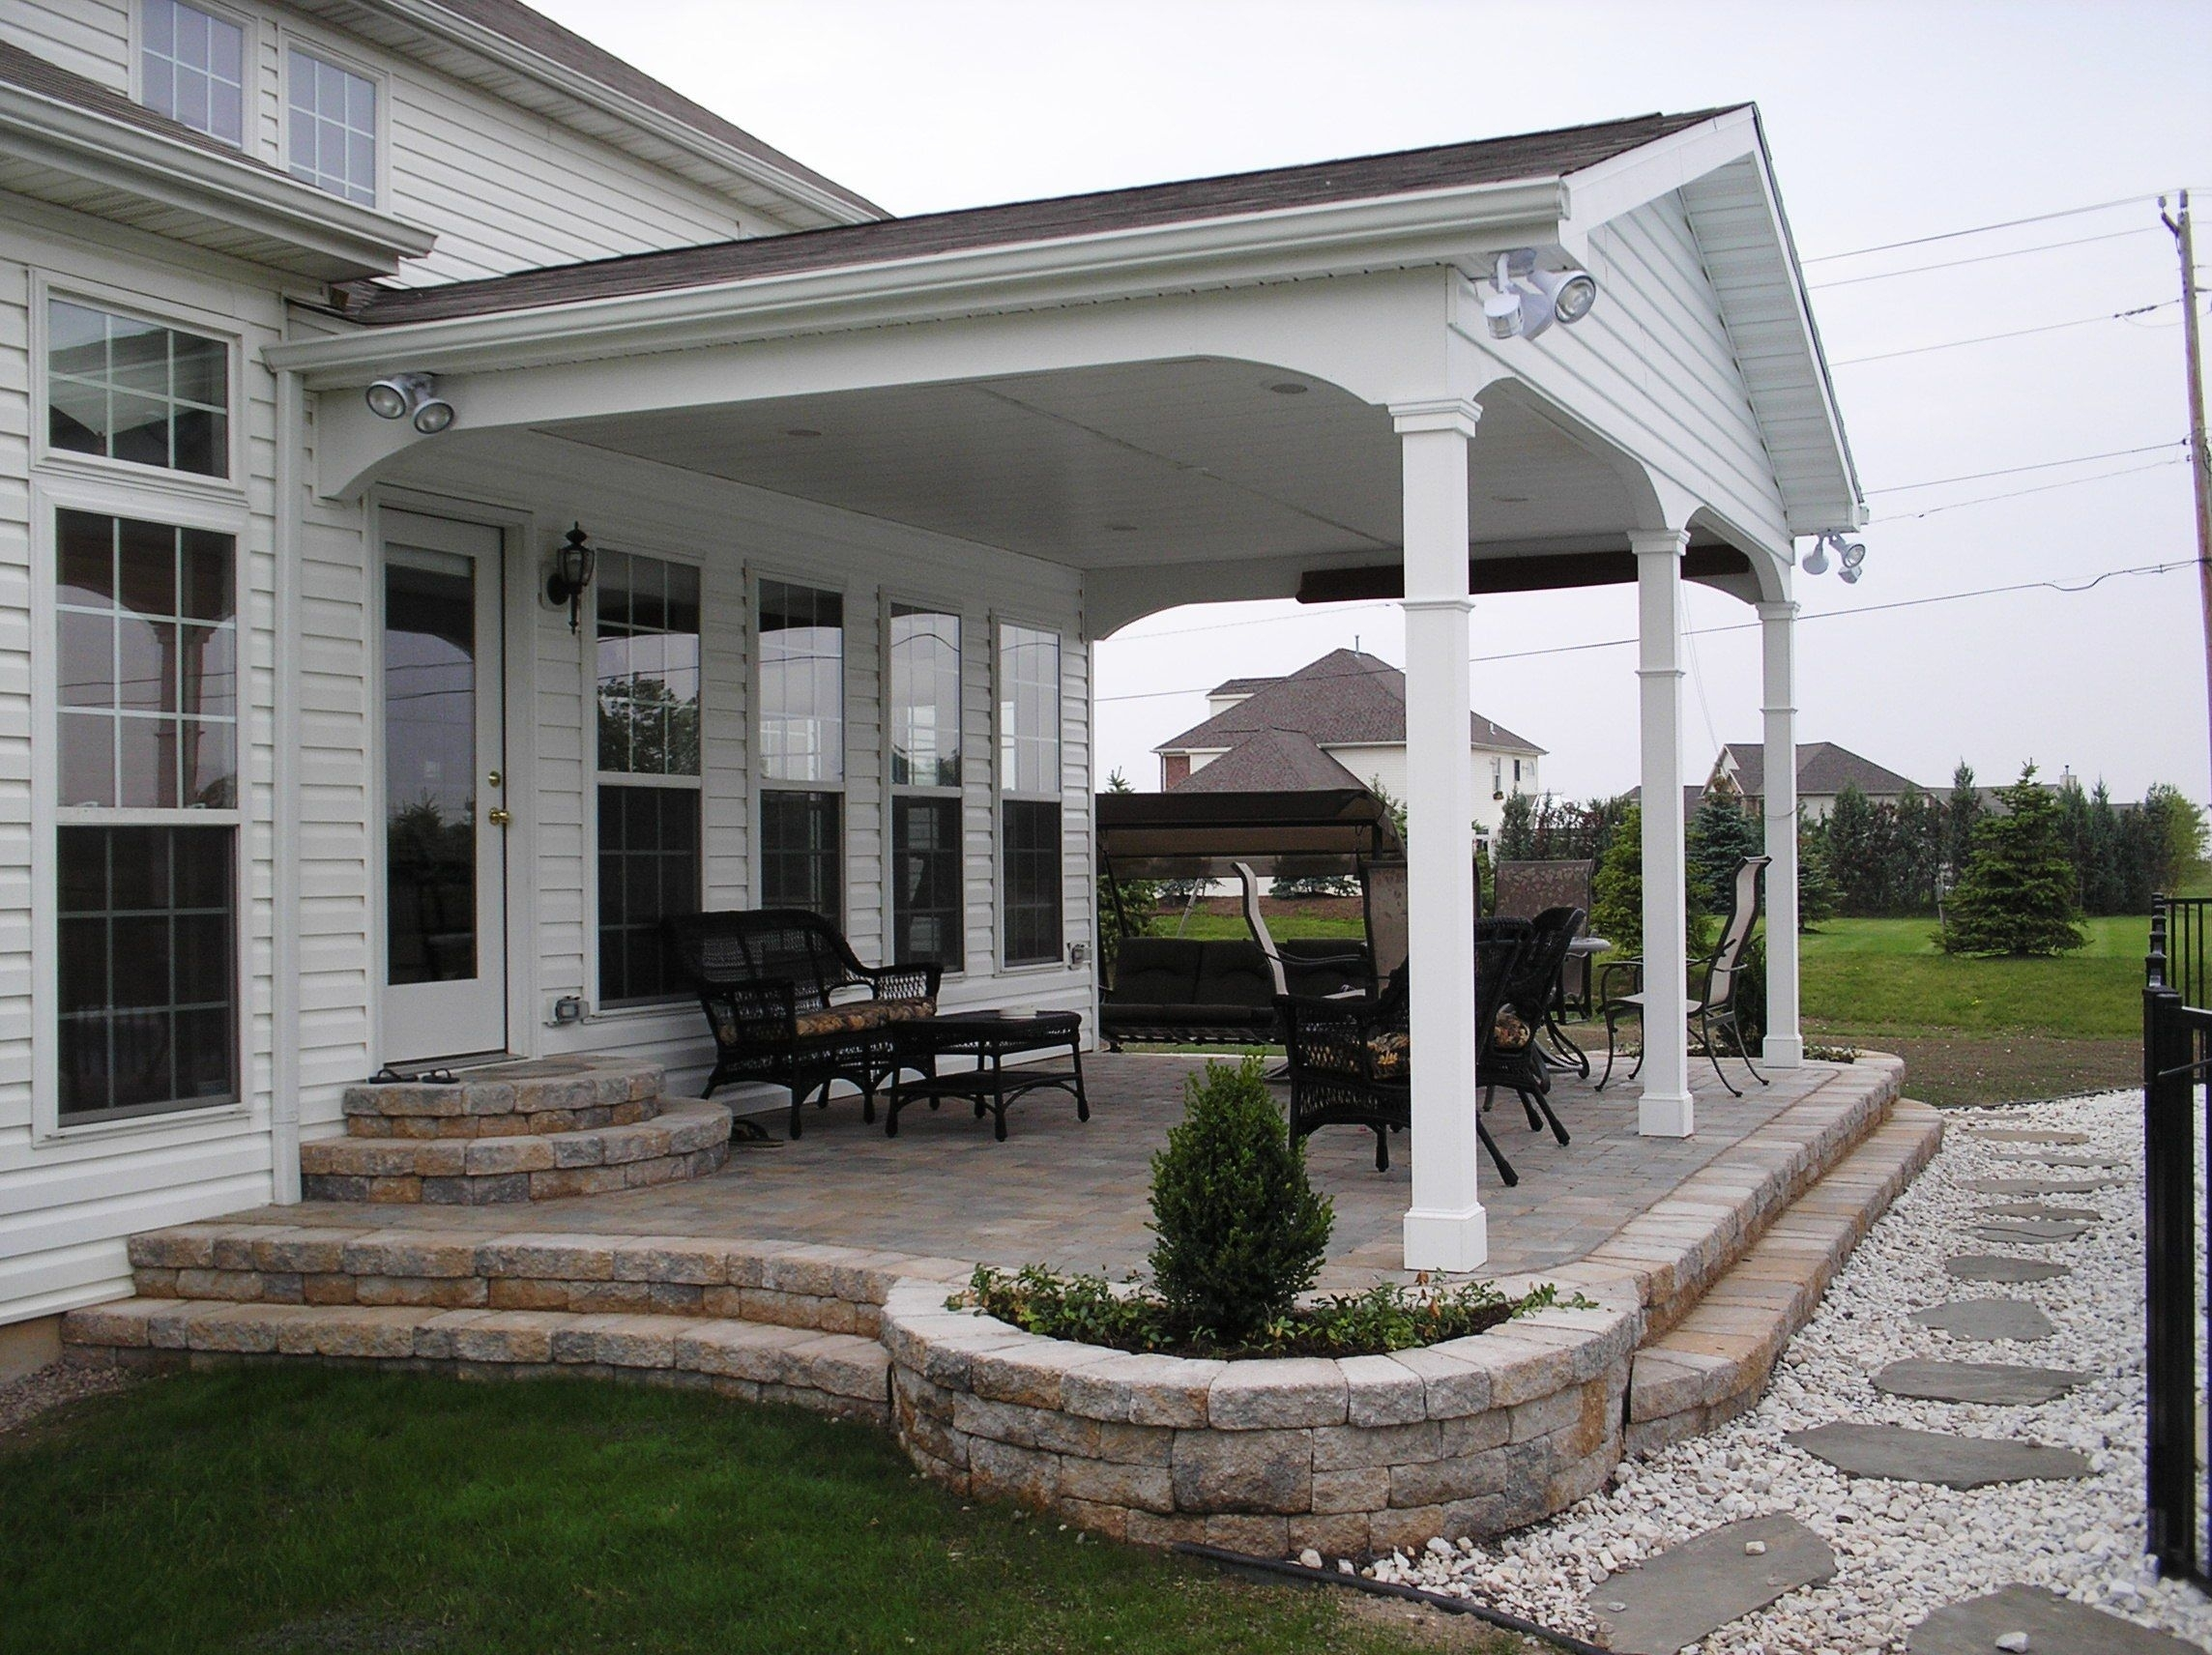 Covered Back Porch Ideas Pictures — Randolph Indoor and ... on Covered Back Porch Ideas id=89834